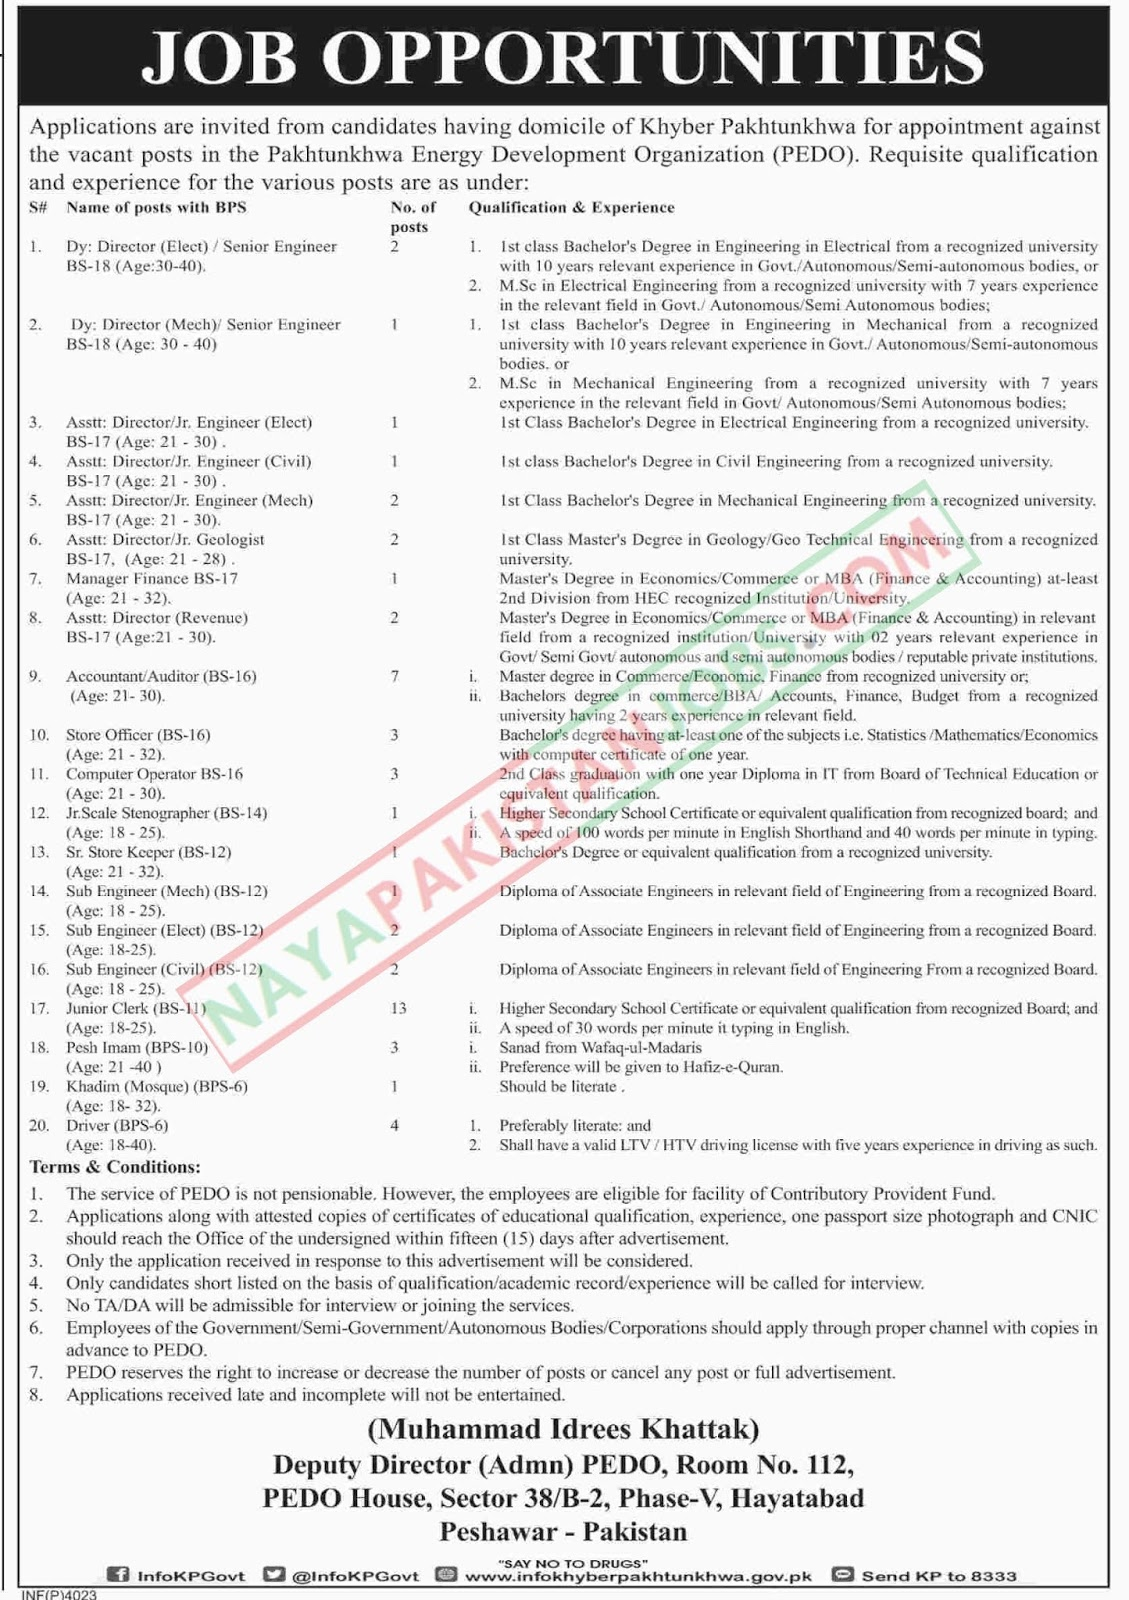 Latest Vacancies Announced in Pakhtunkhwa Energy Development Organization 19 October 2018 - Naya Pakistan